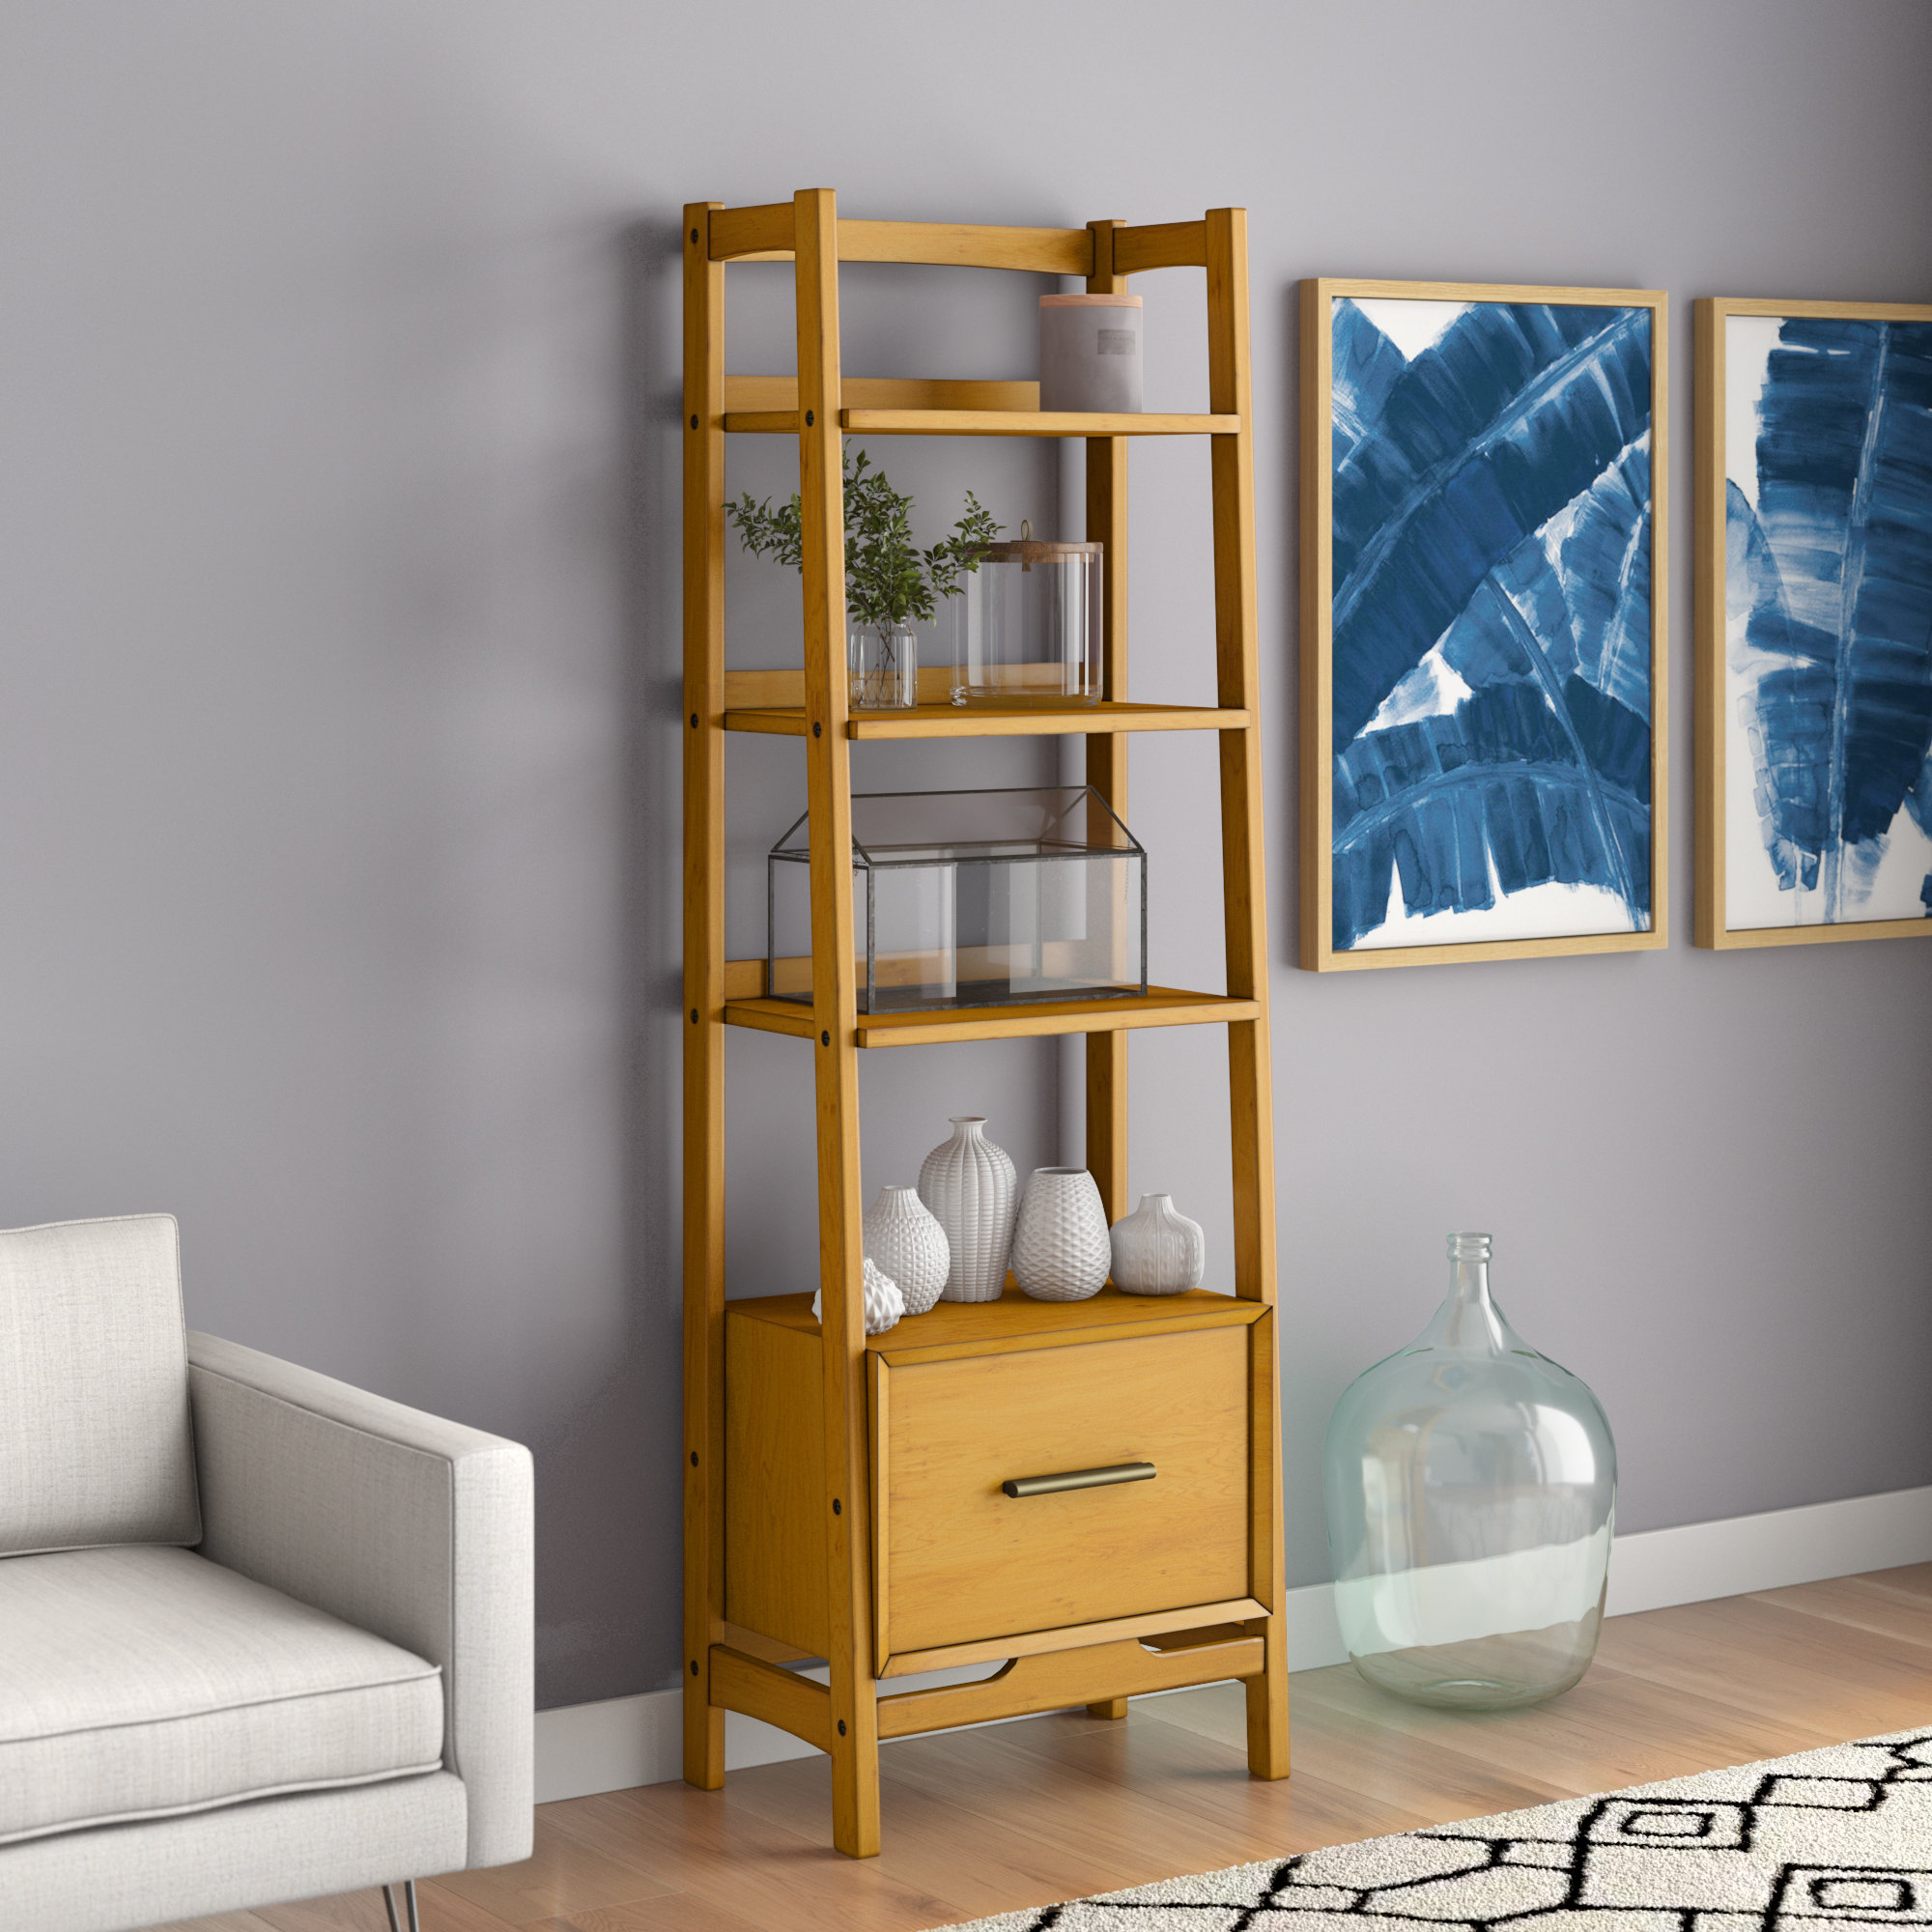 Current Destiny Etagere Bookcases Pertaining To Destiny Etagere Bookcase (View 3 of 20)